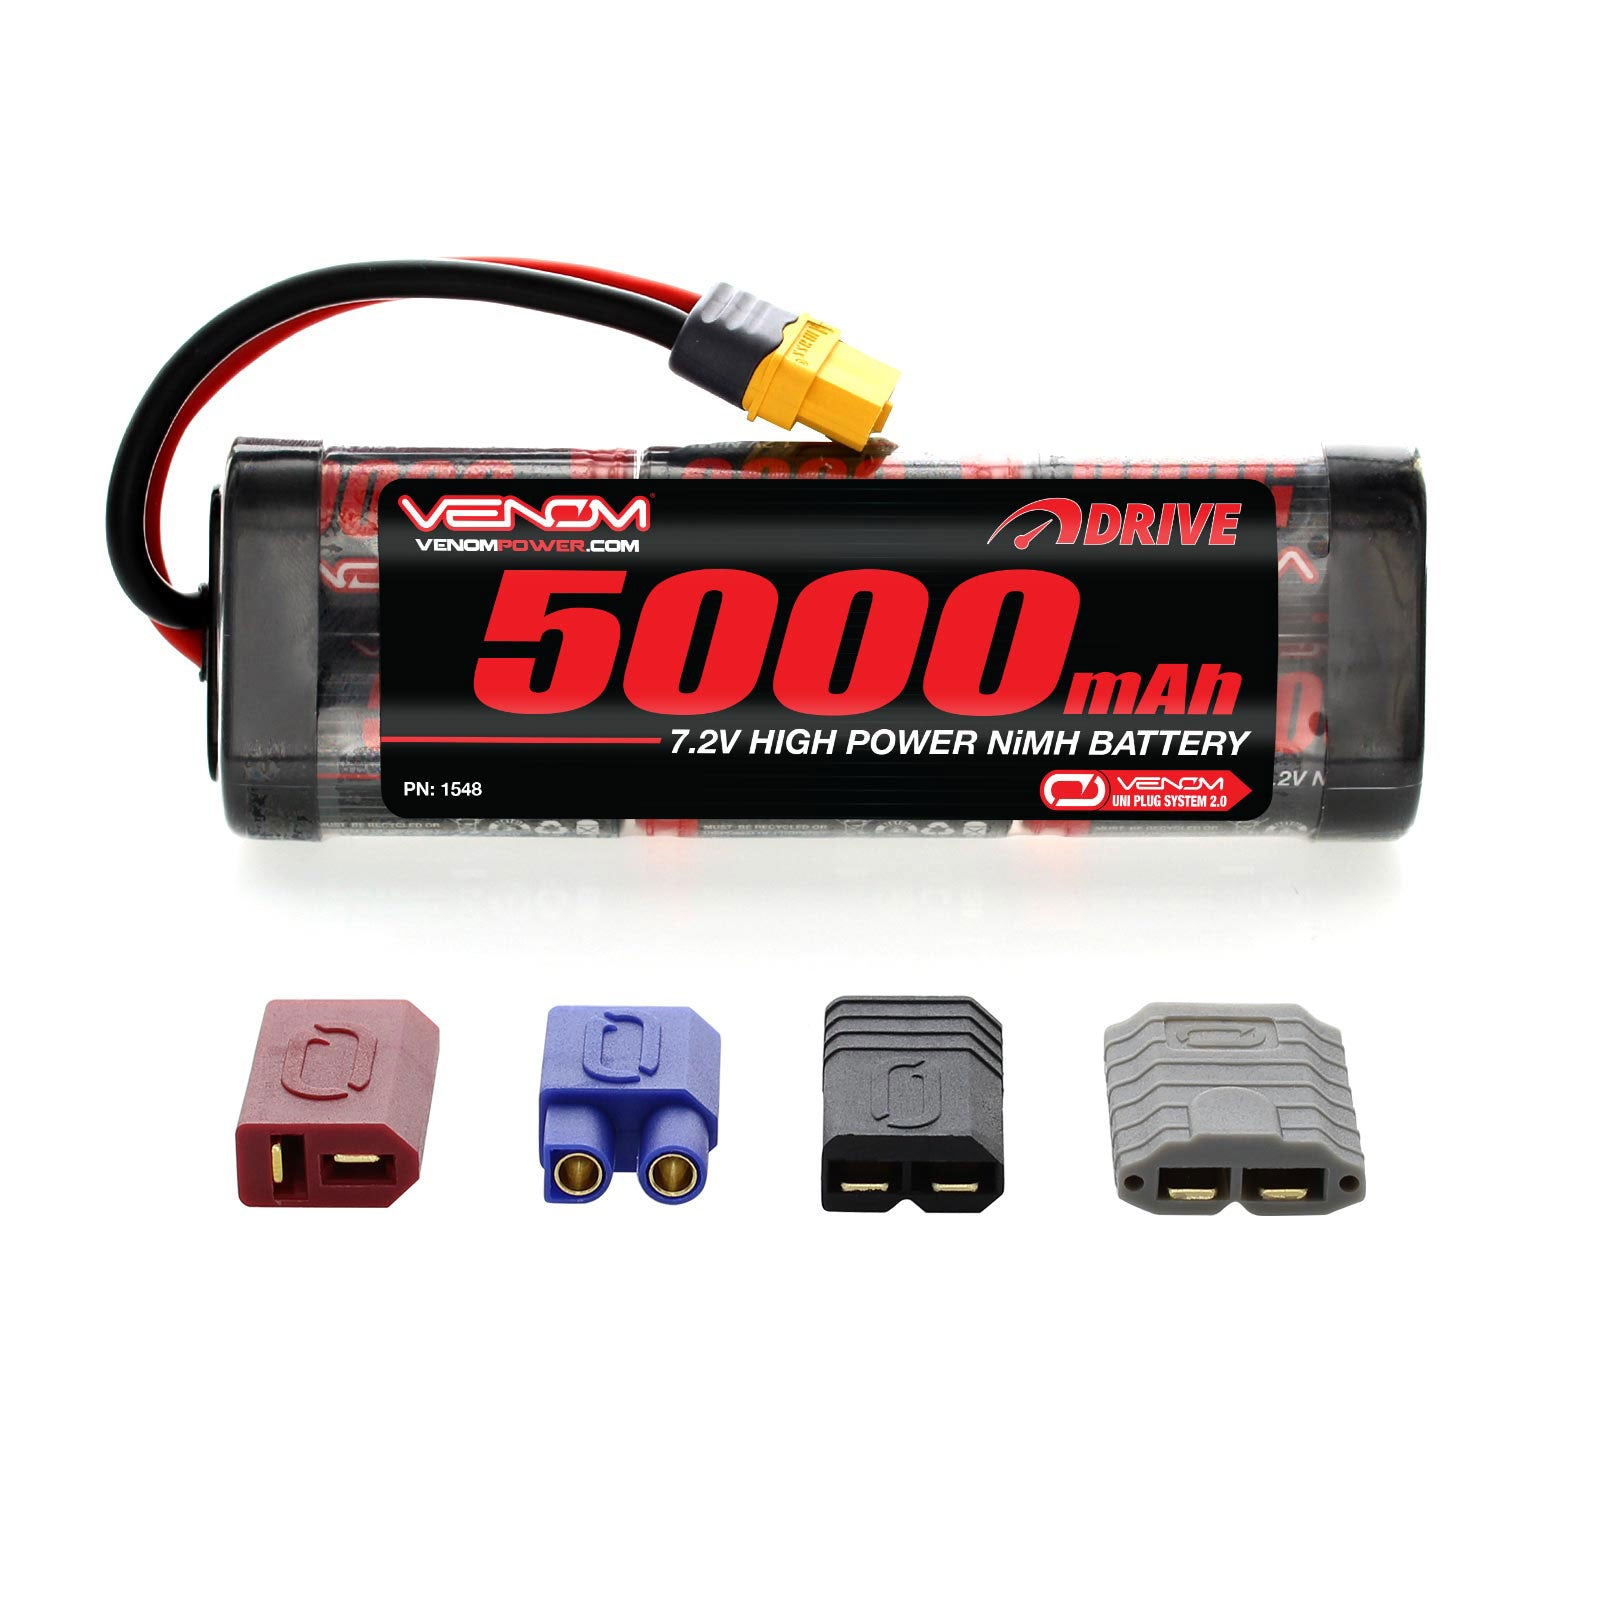 Venom DRIVE 7.2V 5000mAh NiMH Battery with UNI 2.0 Plug VNR1548